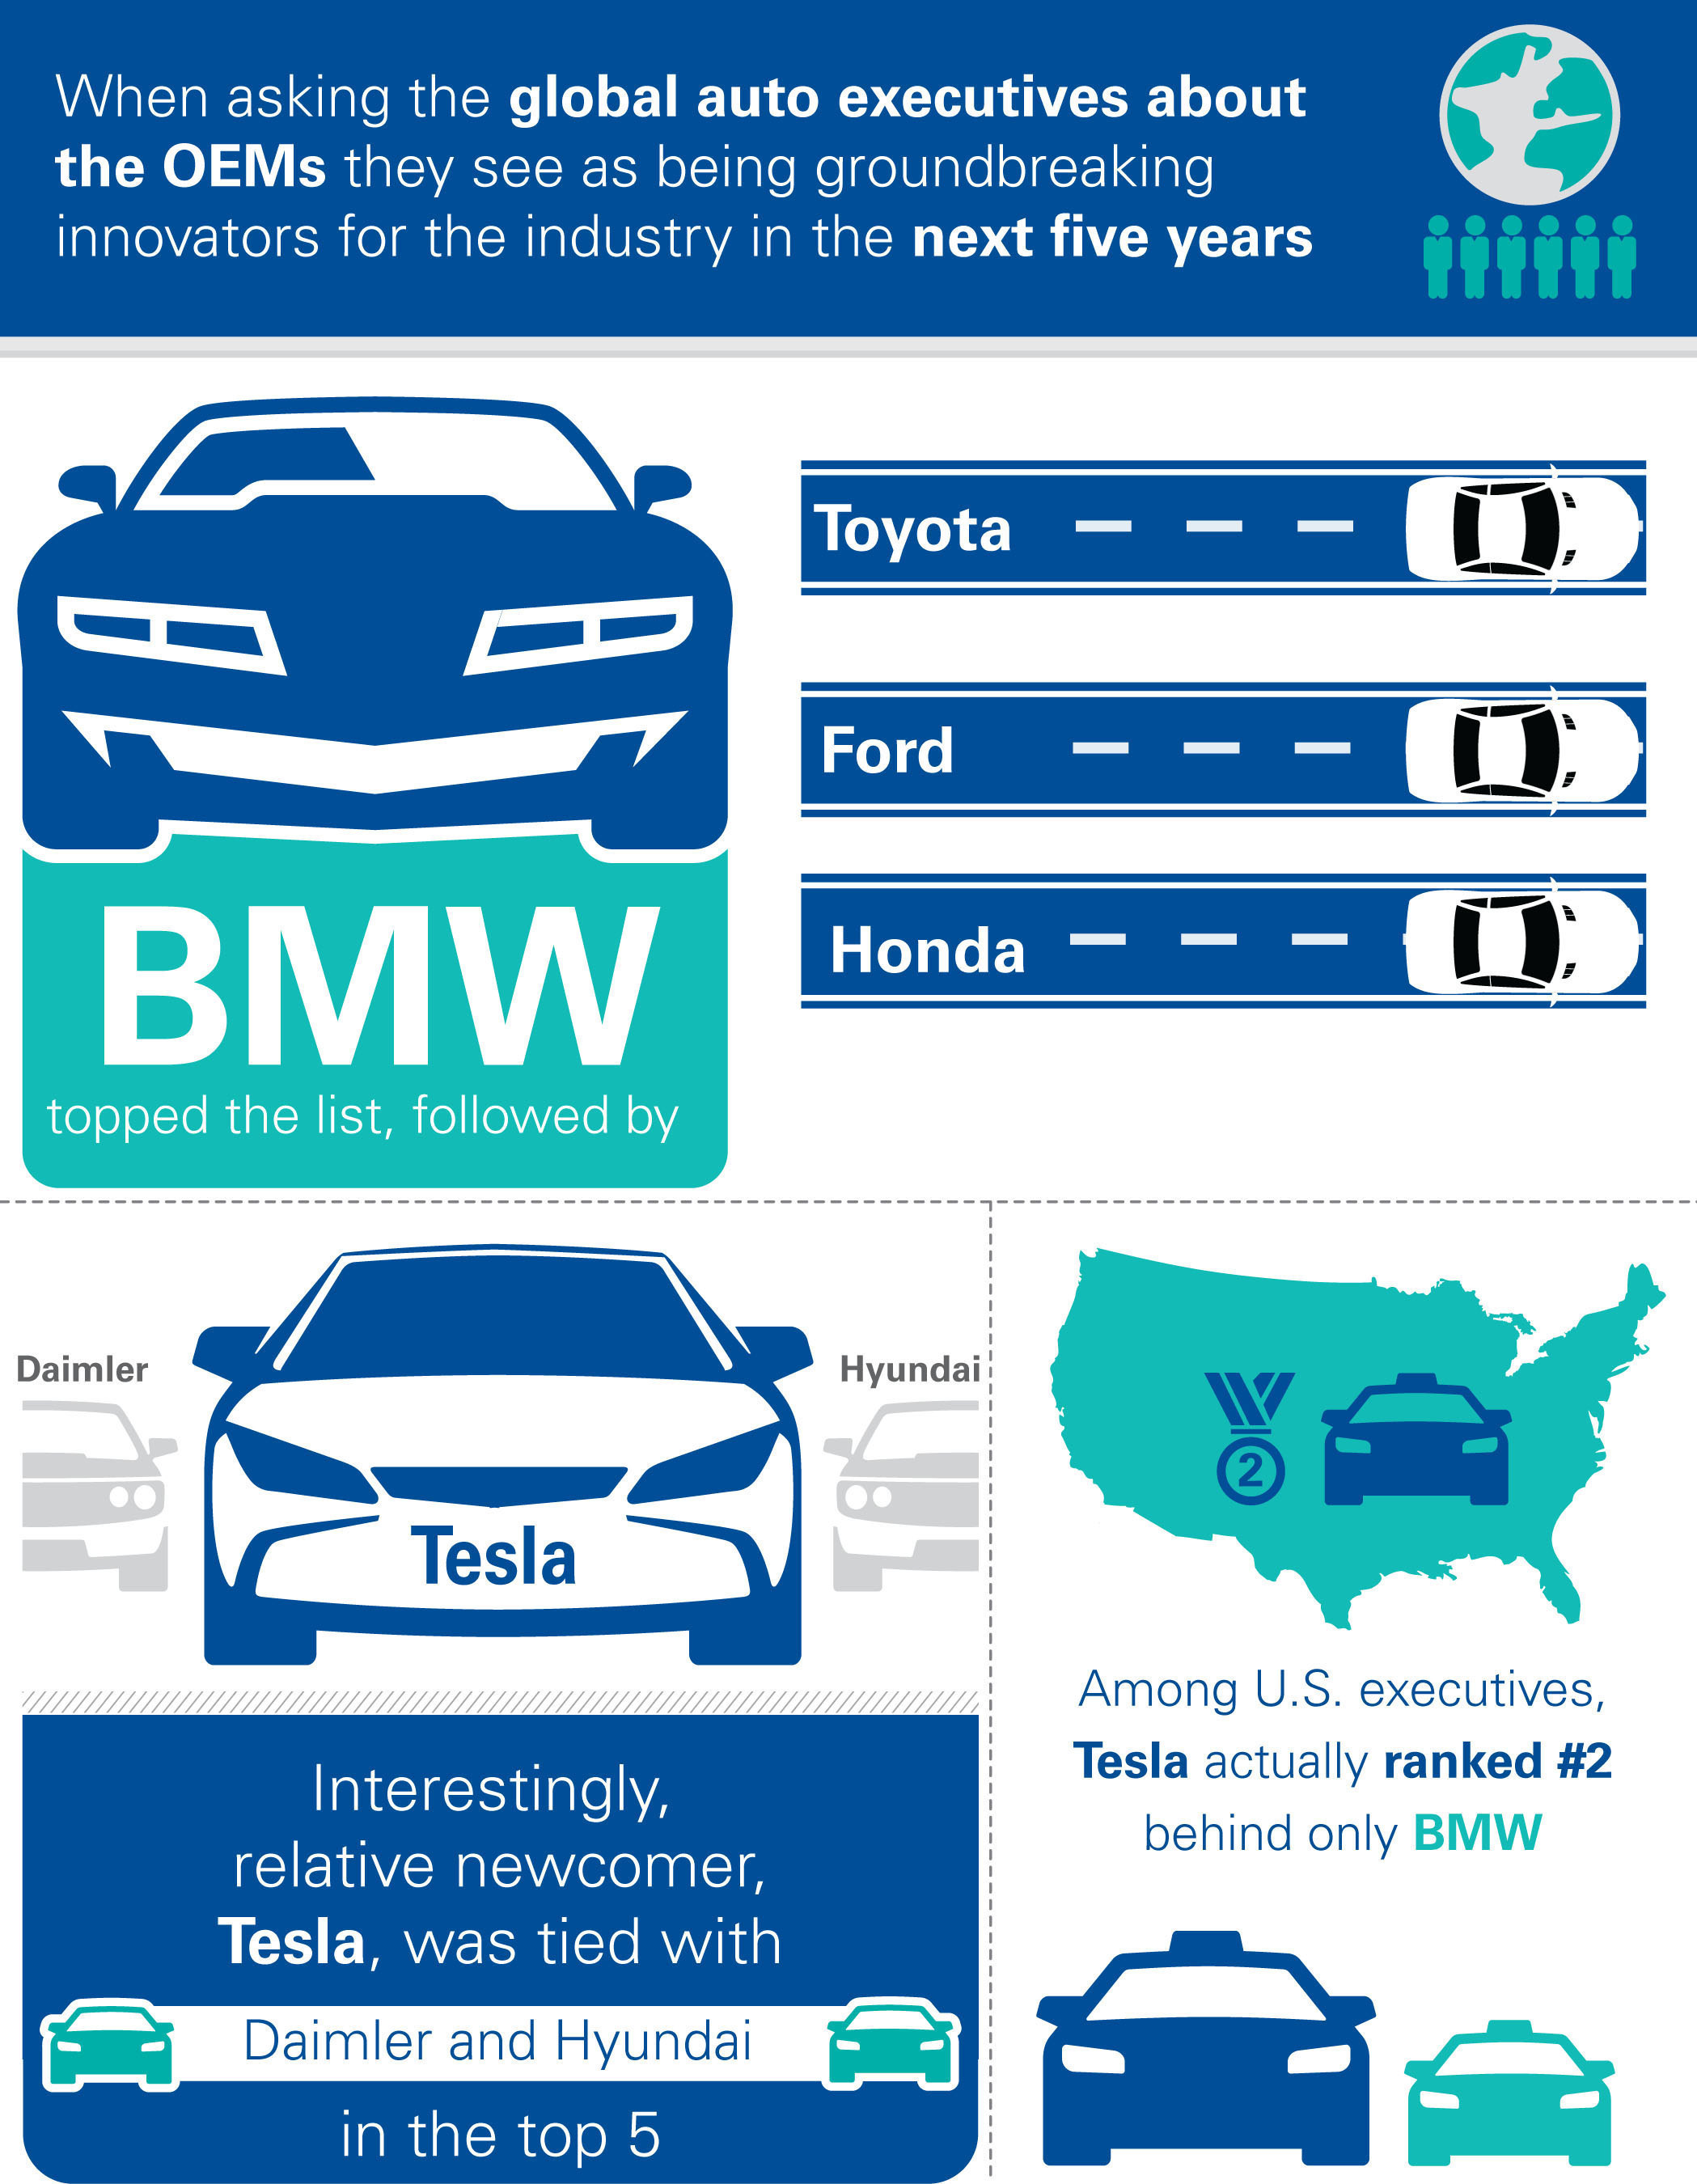 toyotas objectives in global automotive industry essay A pestel analysis of the automotive/automobile industry the global automobile industry is a multi billion industry with several large brands competing for market share.